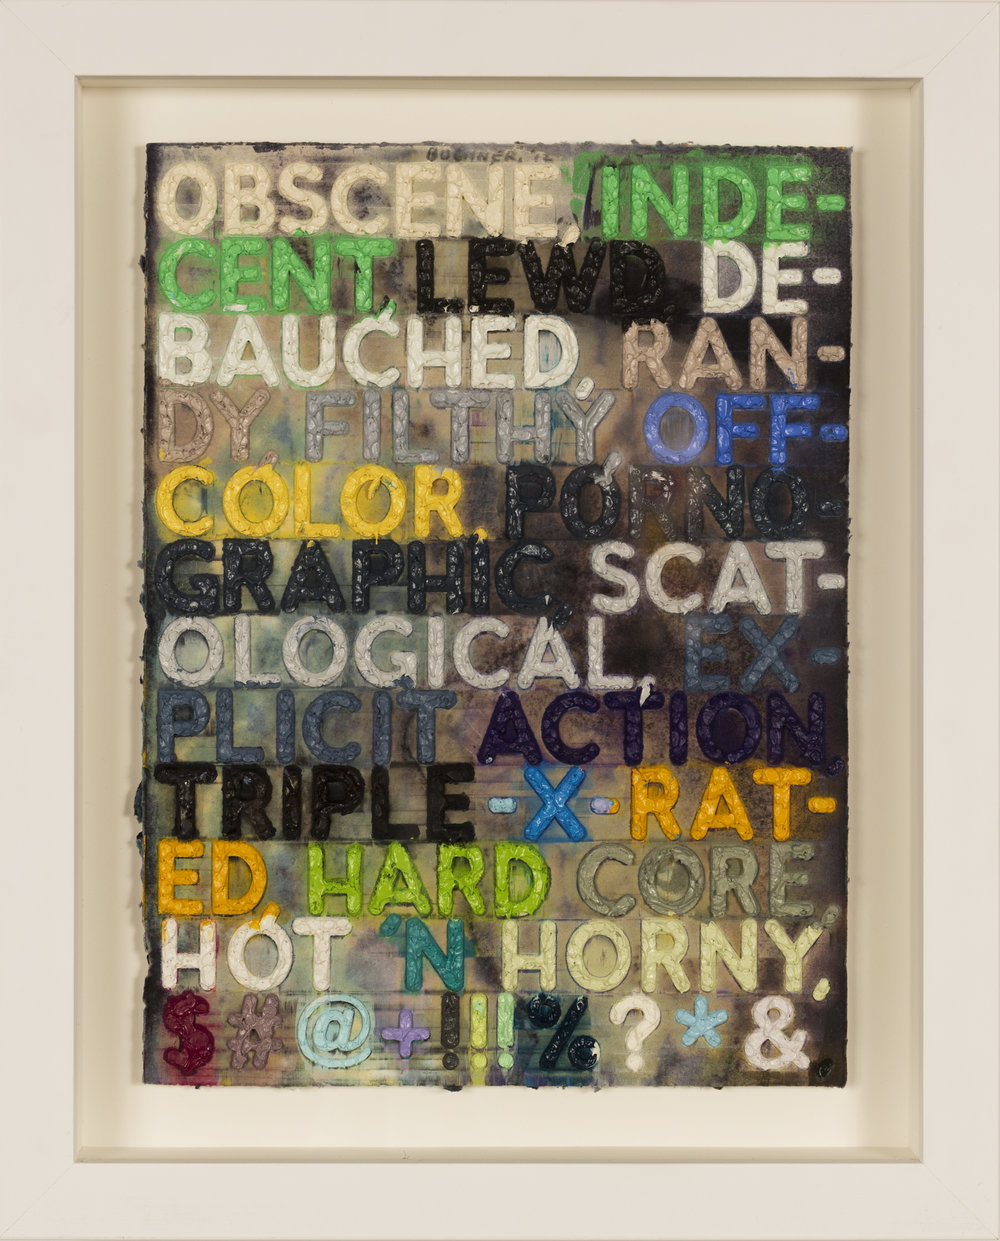 Obscene,   Monoprint with collage, engraving, and embossment on hand-dyed paper, 2012, 12 1/8 x 9 1/8 inches